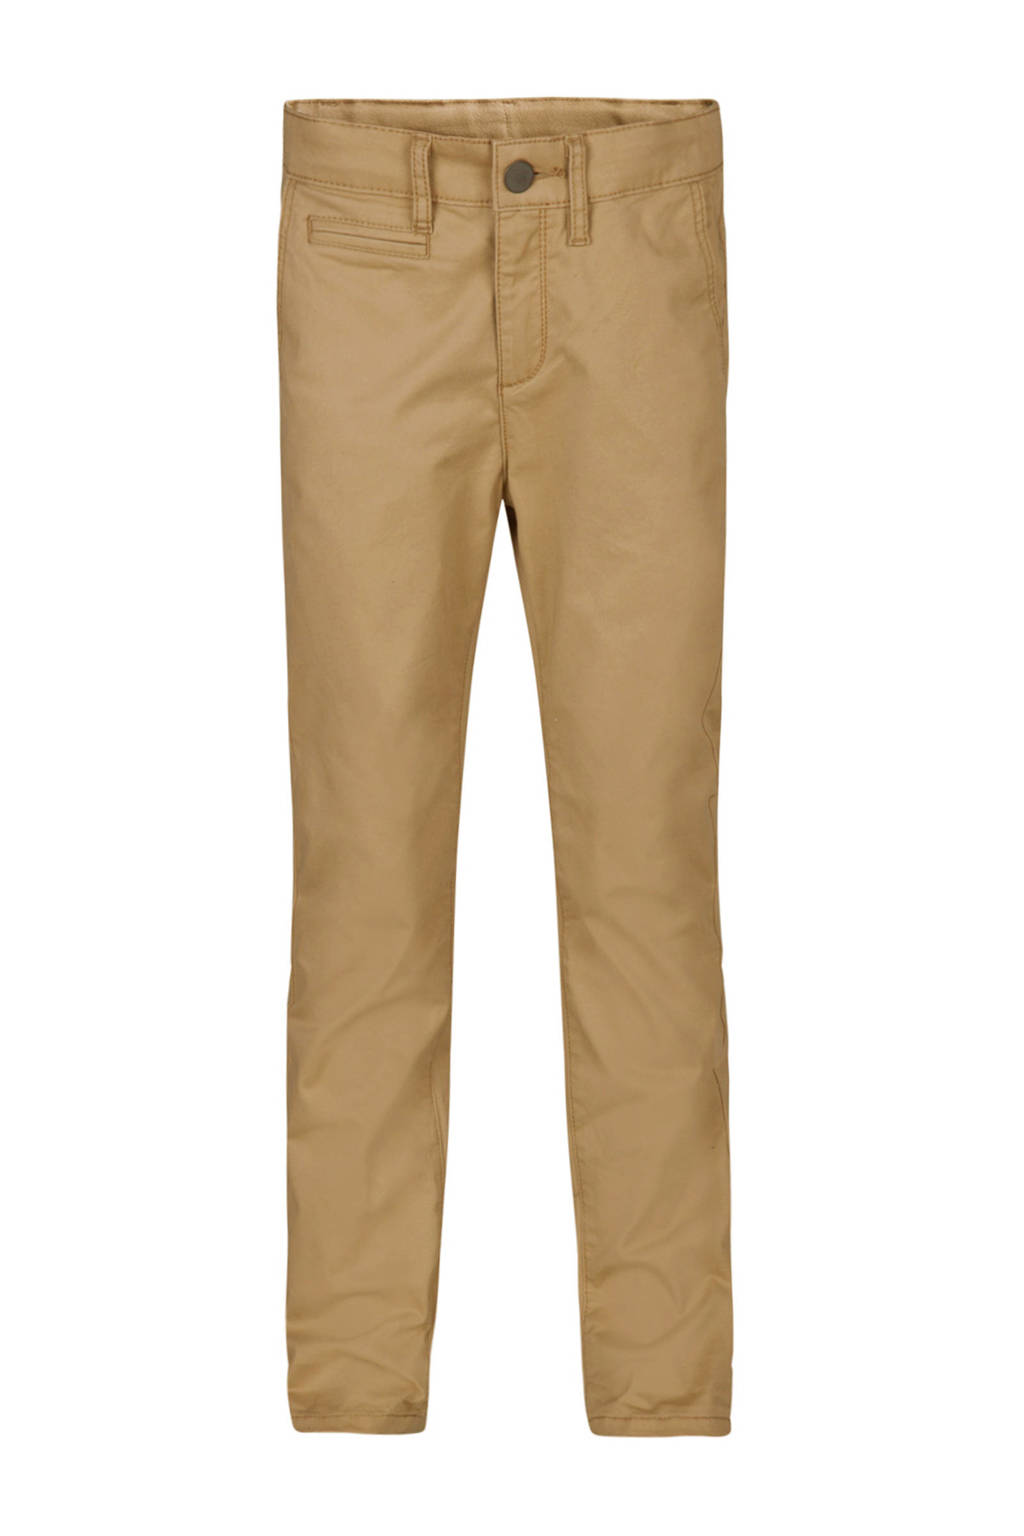 WE Fashion chino beige, Beige